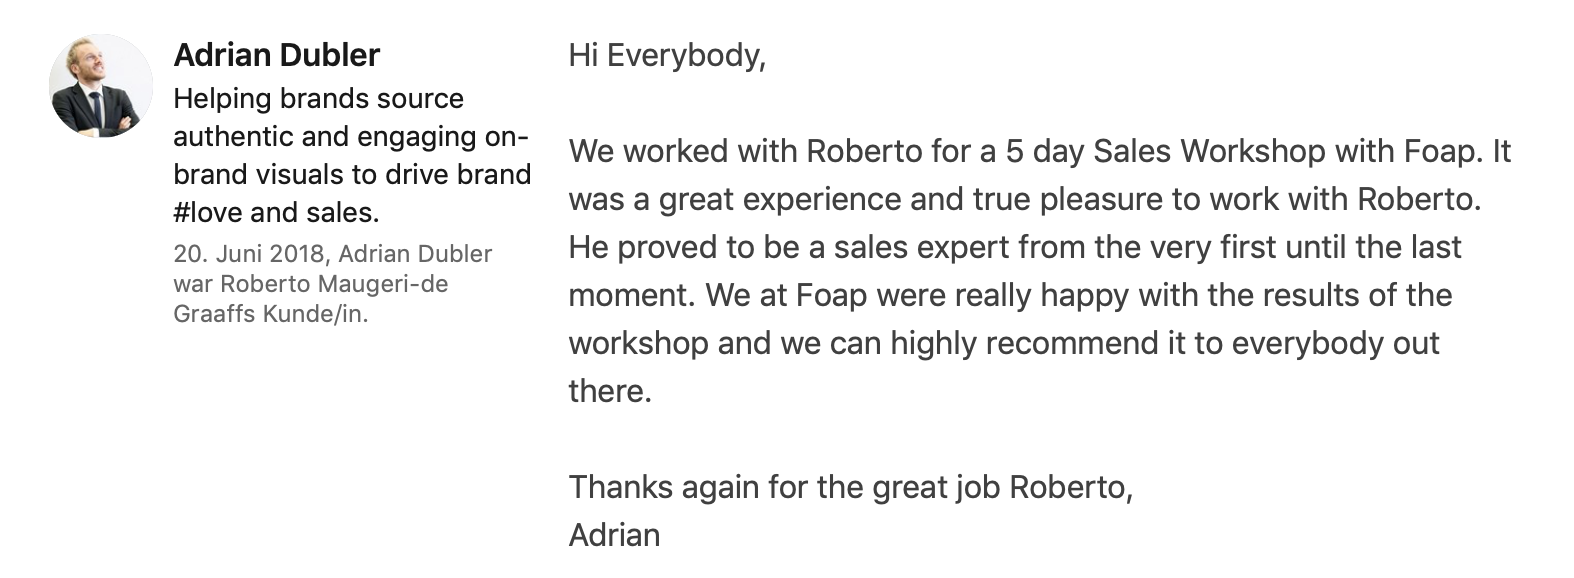 Testimonial on Linkedin of Adrian Dubler, CEO, Foap.com